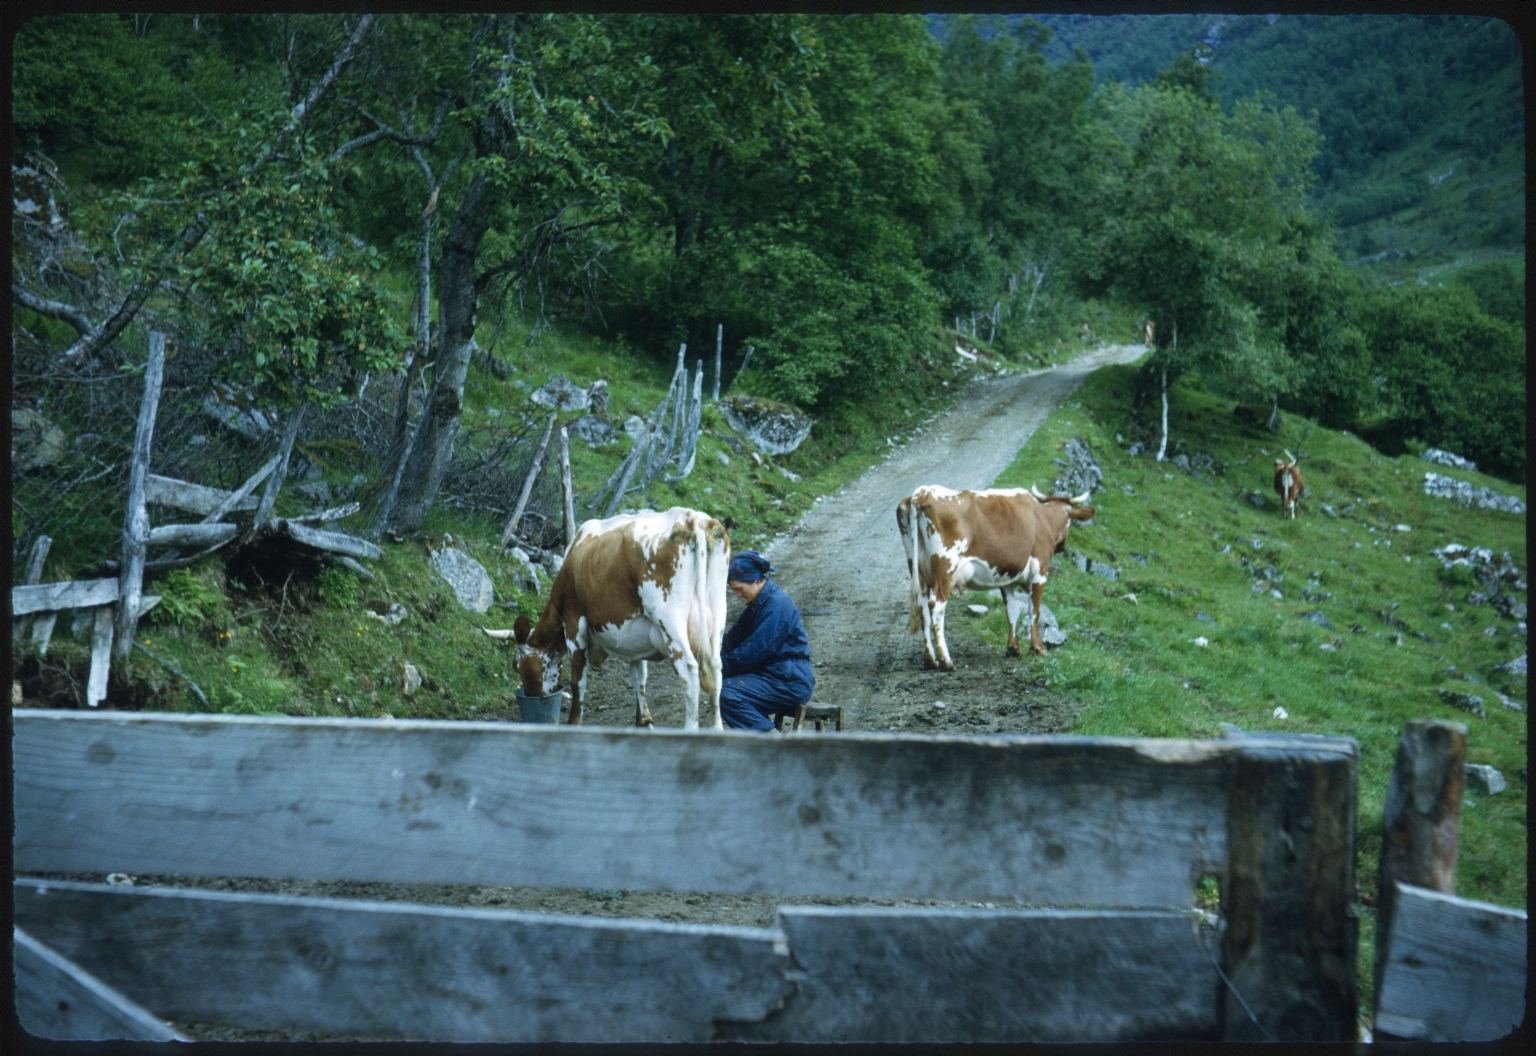 Milking cows in Norway